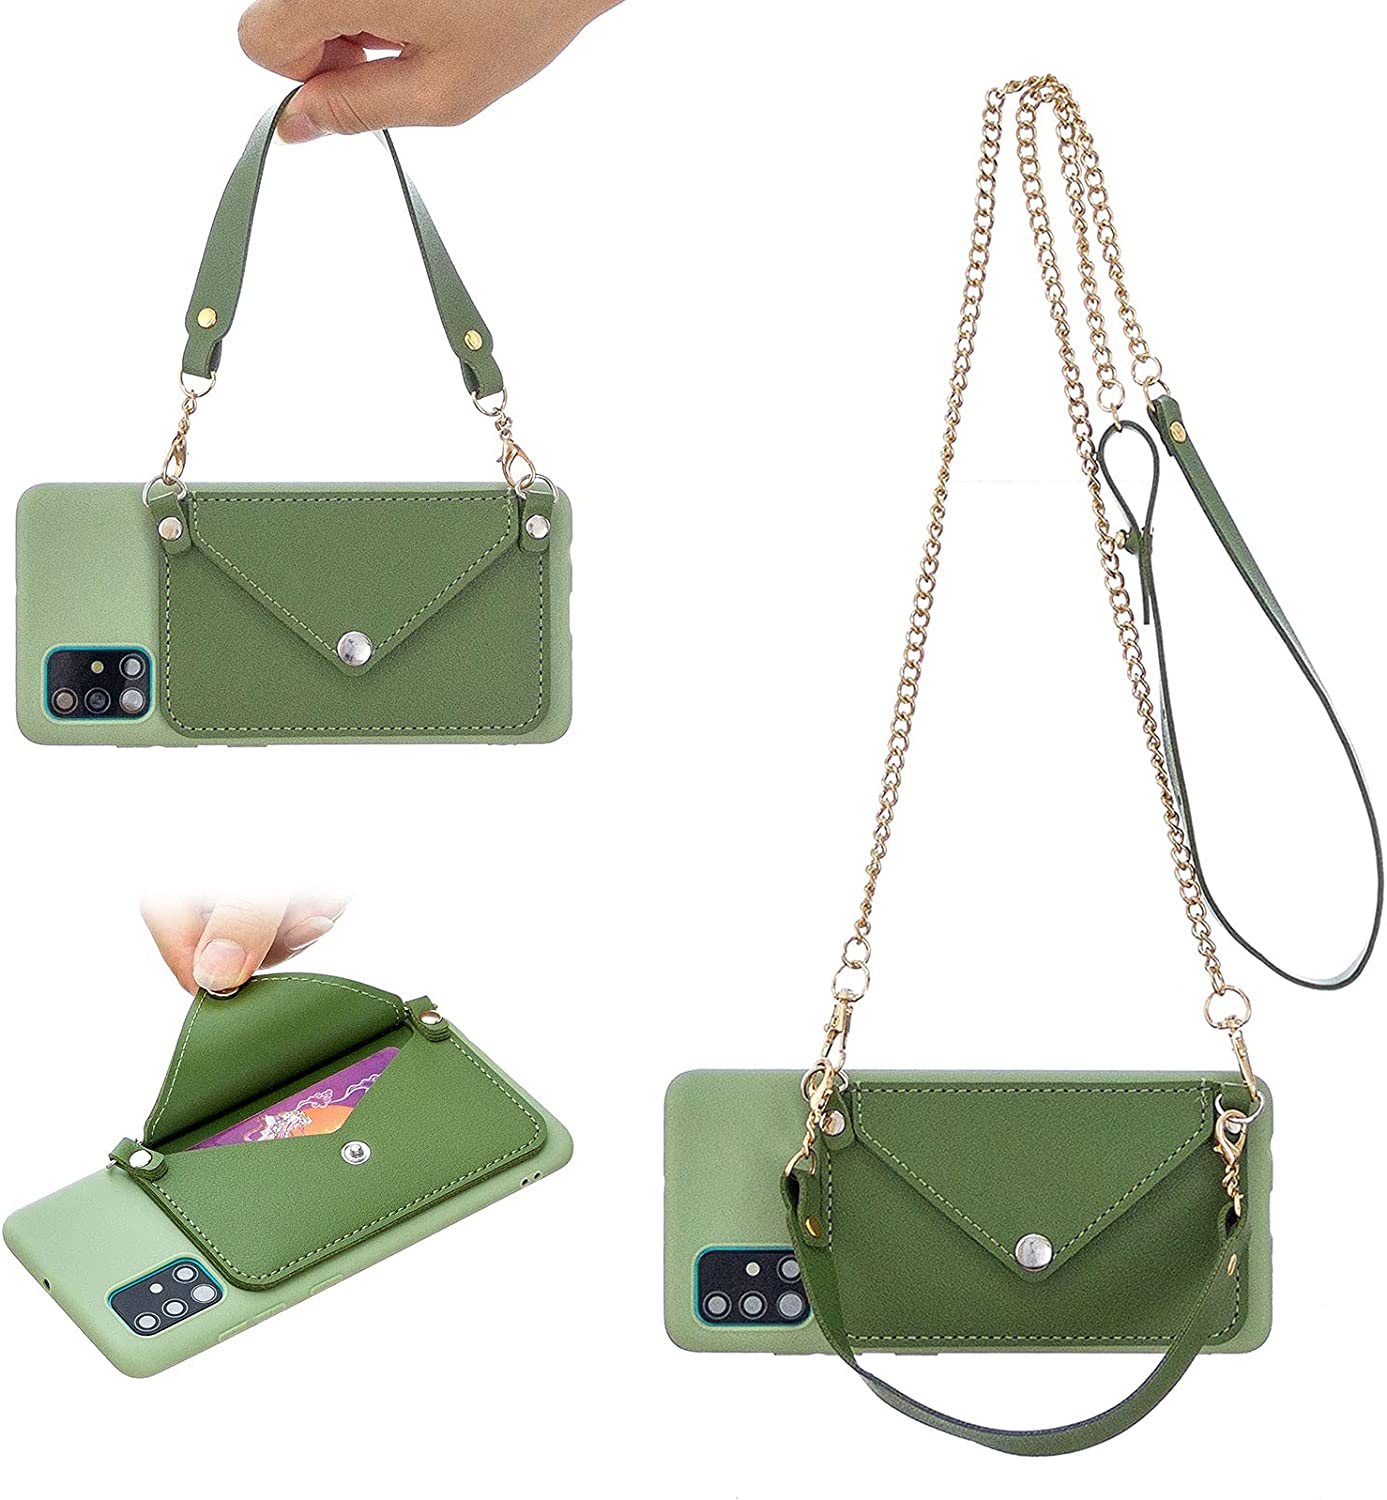 Girlyard for Samsung Galaxy A02s Case with Card Holder and Lanyard, Soft TPU Silicone Wallet Phone Case with Wrist Strap and Crossbody Shoulder Chain Strap Purse Cover for Women Girls - Green